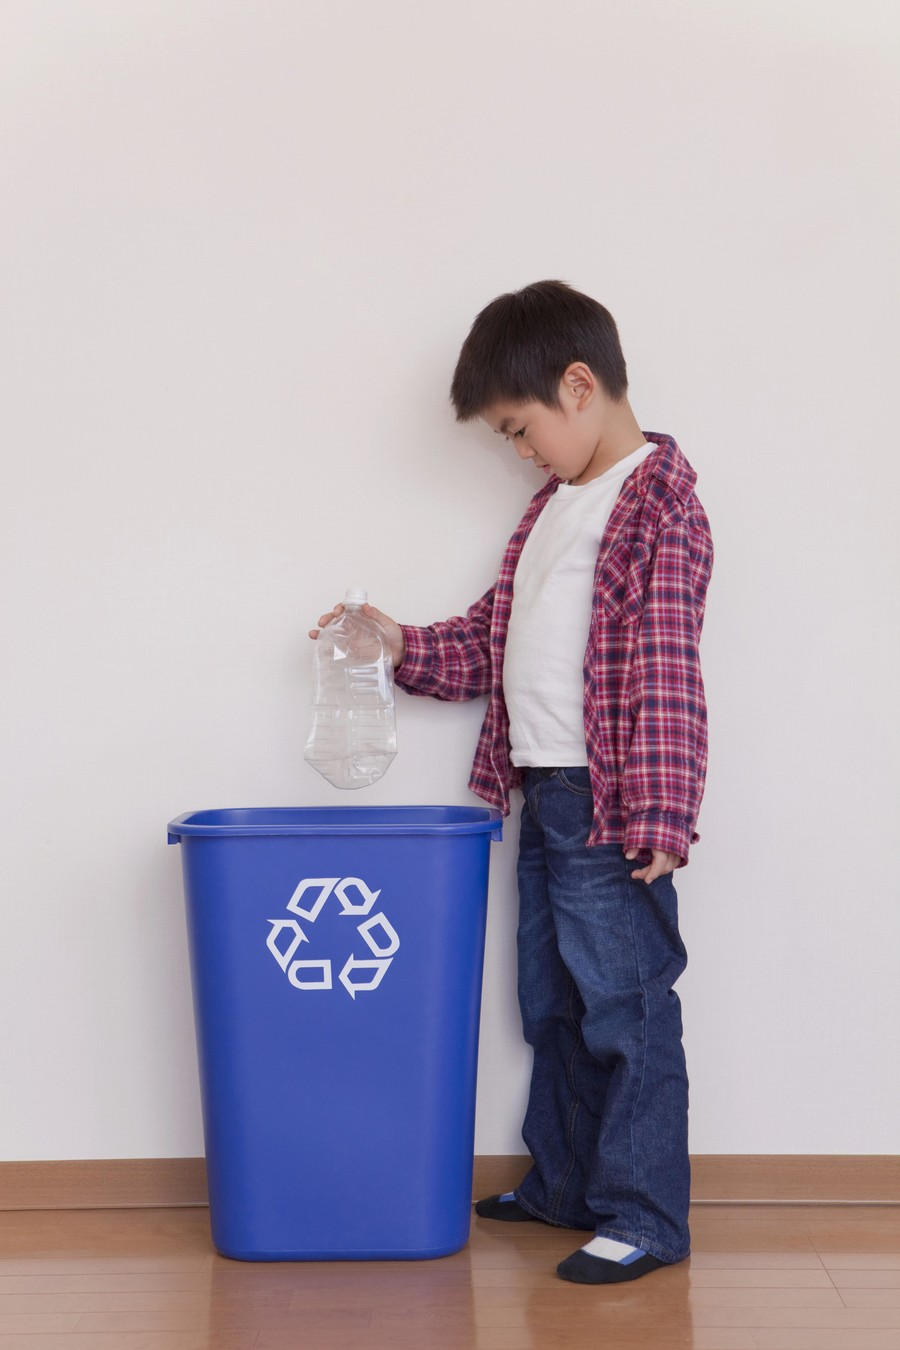 Recycle kids? AFP faces backlash for report on green study advising people to have fewer children